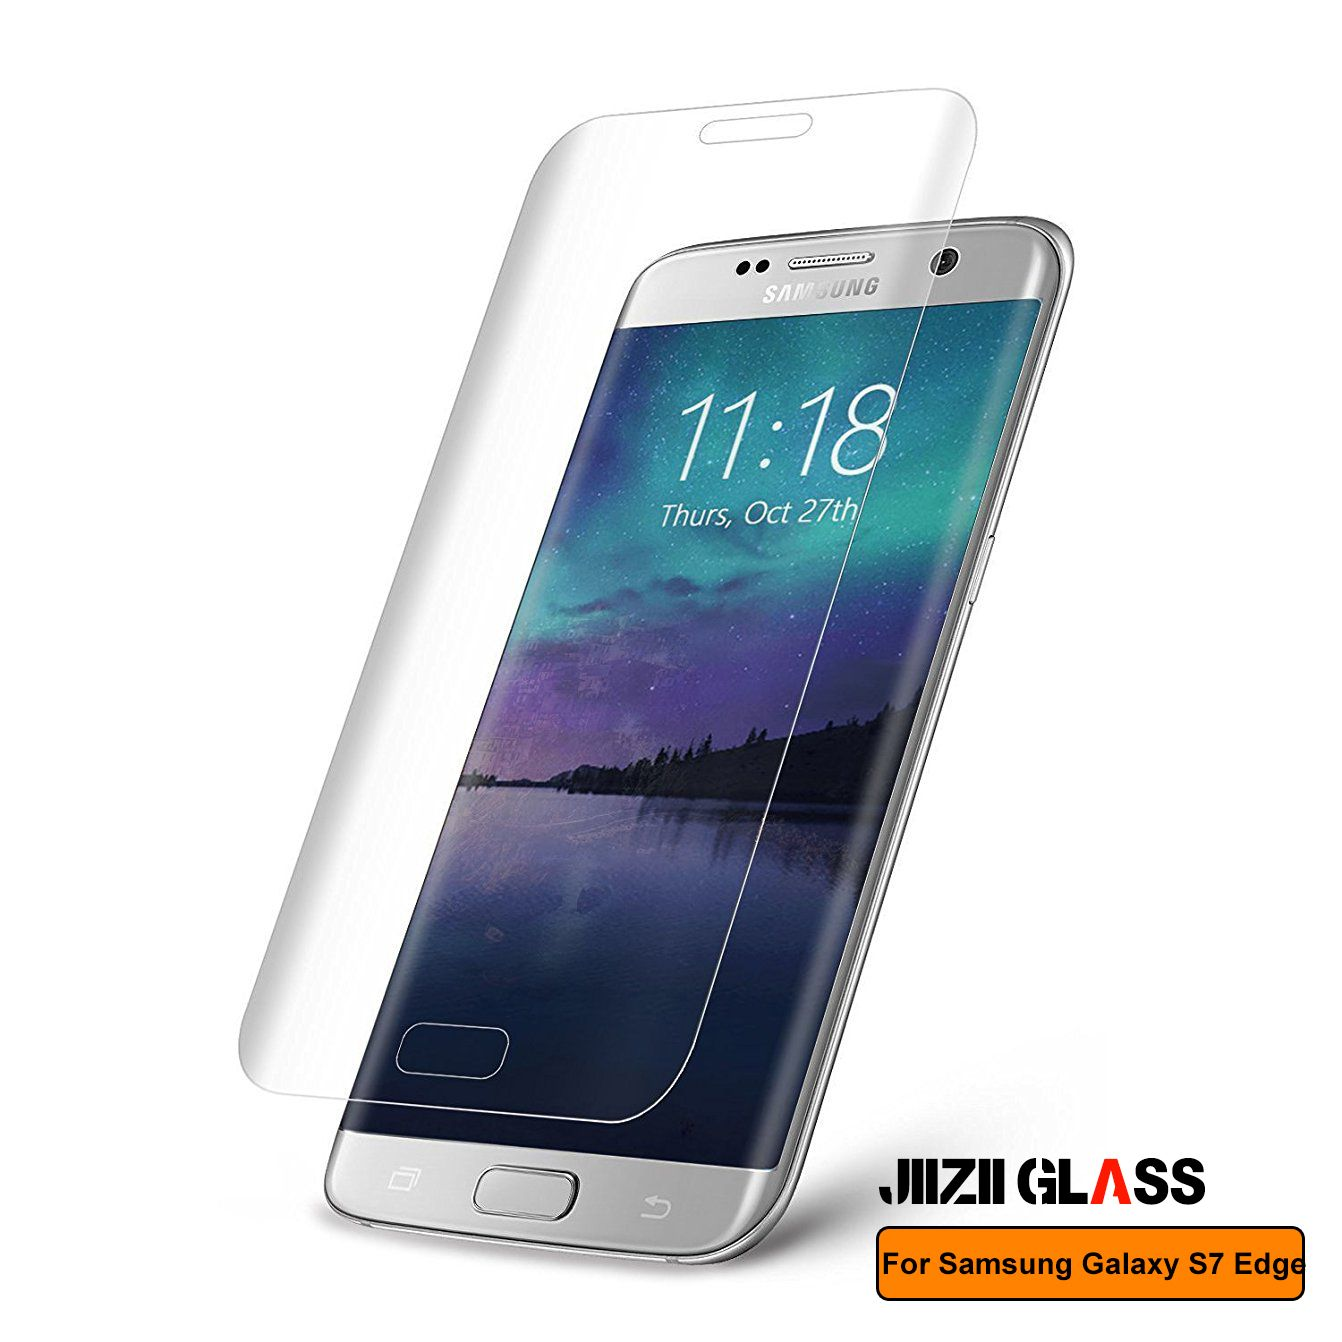 2 Packs Galaxy S6 Edge Tempered Glass Screen Protector Tempered Glass Clear Screen Protector Scratch-Resistant Screen Guard for Samsung Galaxy S6 Edge G925 White